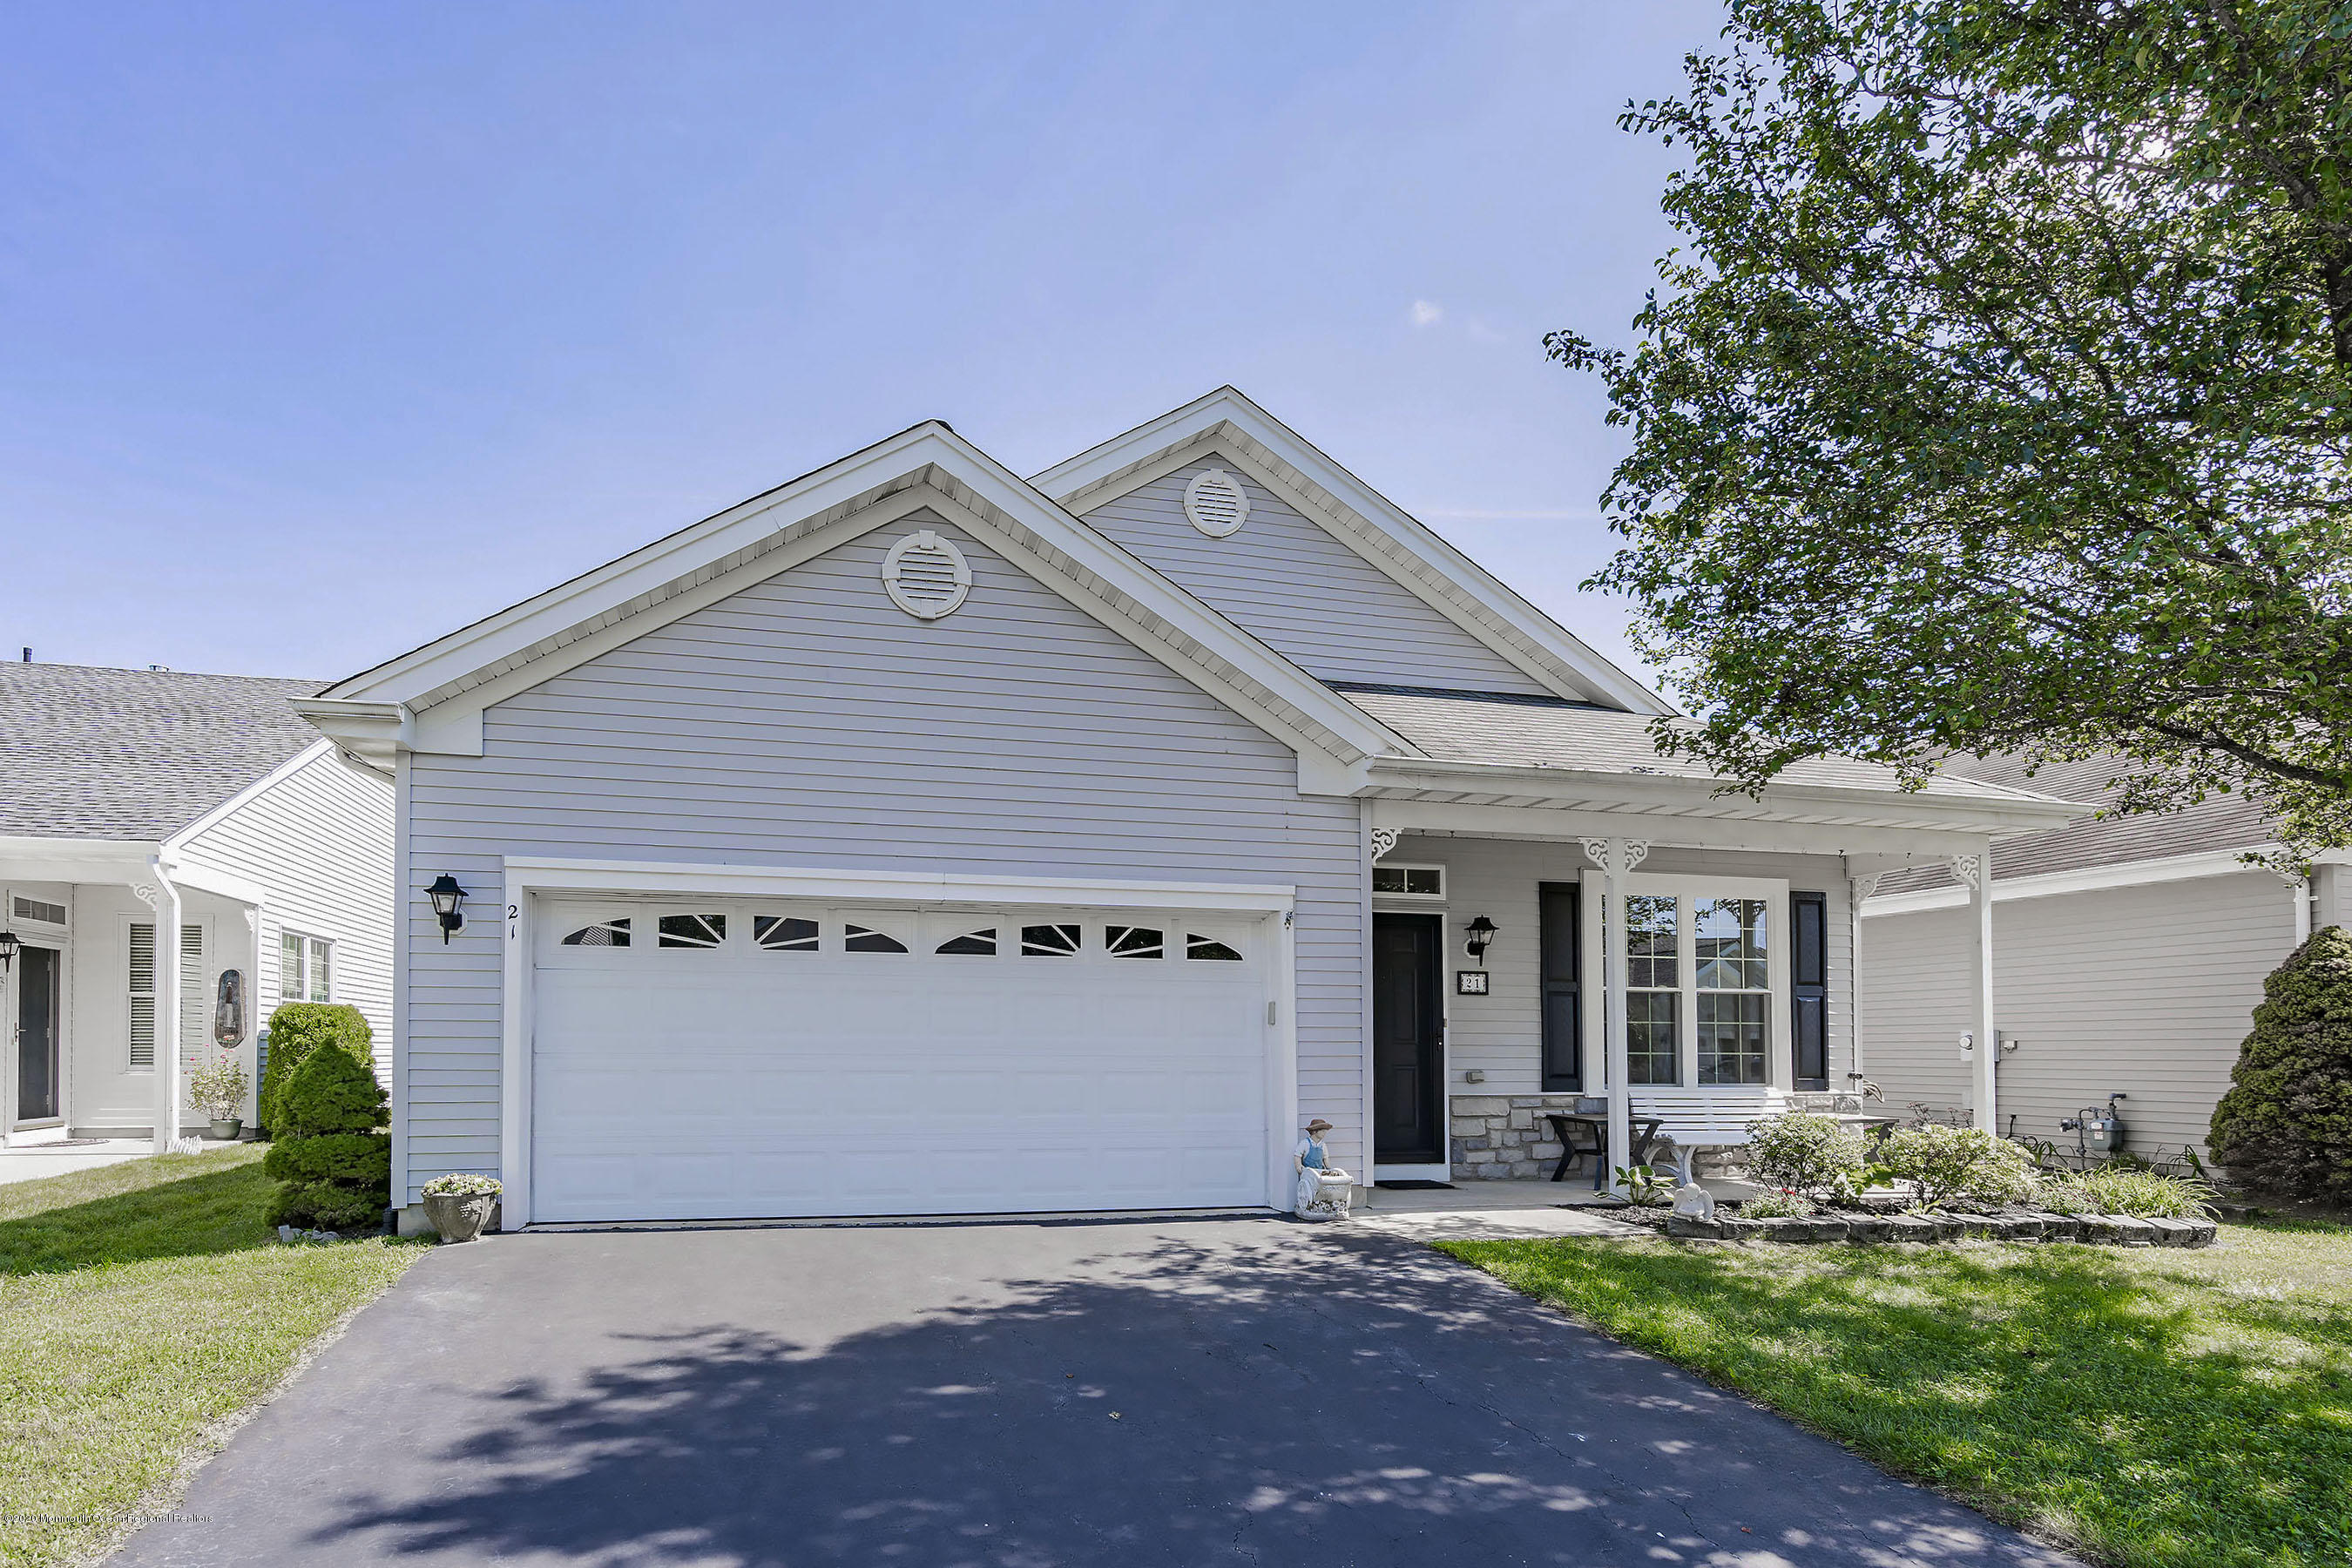 Welcome Home! This one of-a-kind Barnegat Model could be yours. The owner extended the Family Room making a very large Open Floor Plans for entertaining.  Sit by the gorgeous Fireplace and enjoy. Also there are BRAND new windows throughout the home. Updated EIK with cabinets galore.Tile Back splash.  the MBR is spacious and features a WIC and full bath.  the 2nd Bedroom is also spacious and has the Full 2nd Bathroom nearby. Additionally there is a very large(length  of the home)patio overlooking a Park Like Setting. Owner has recently replaced the shutters/storm door and painted the front door.  Lots of curb appeal.  Great lot.  This has been a non-smoking home and no pets. Nearby all major highways, shopping, restaurants and Long Beach Island(LBI)